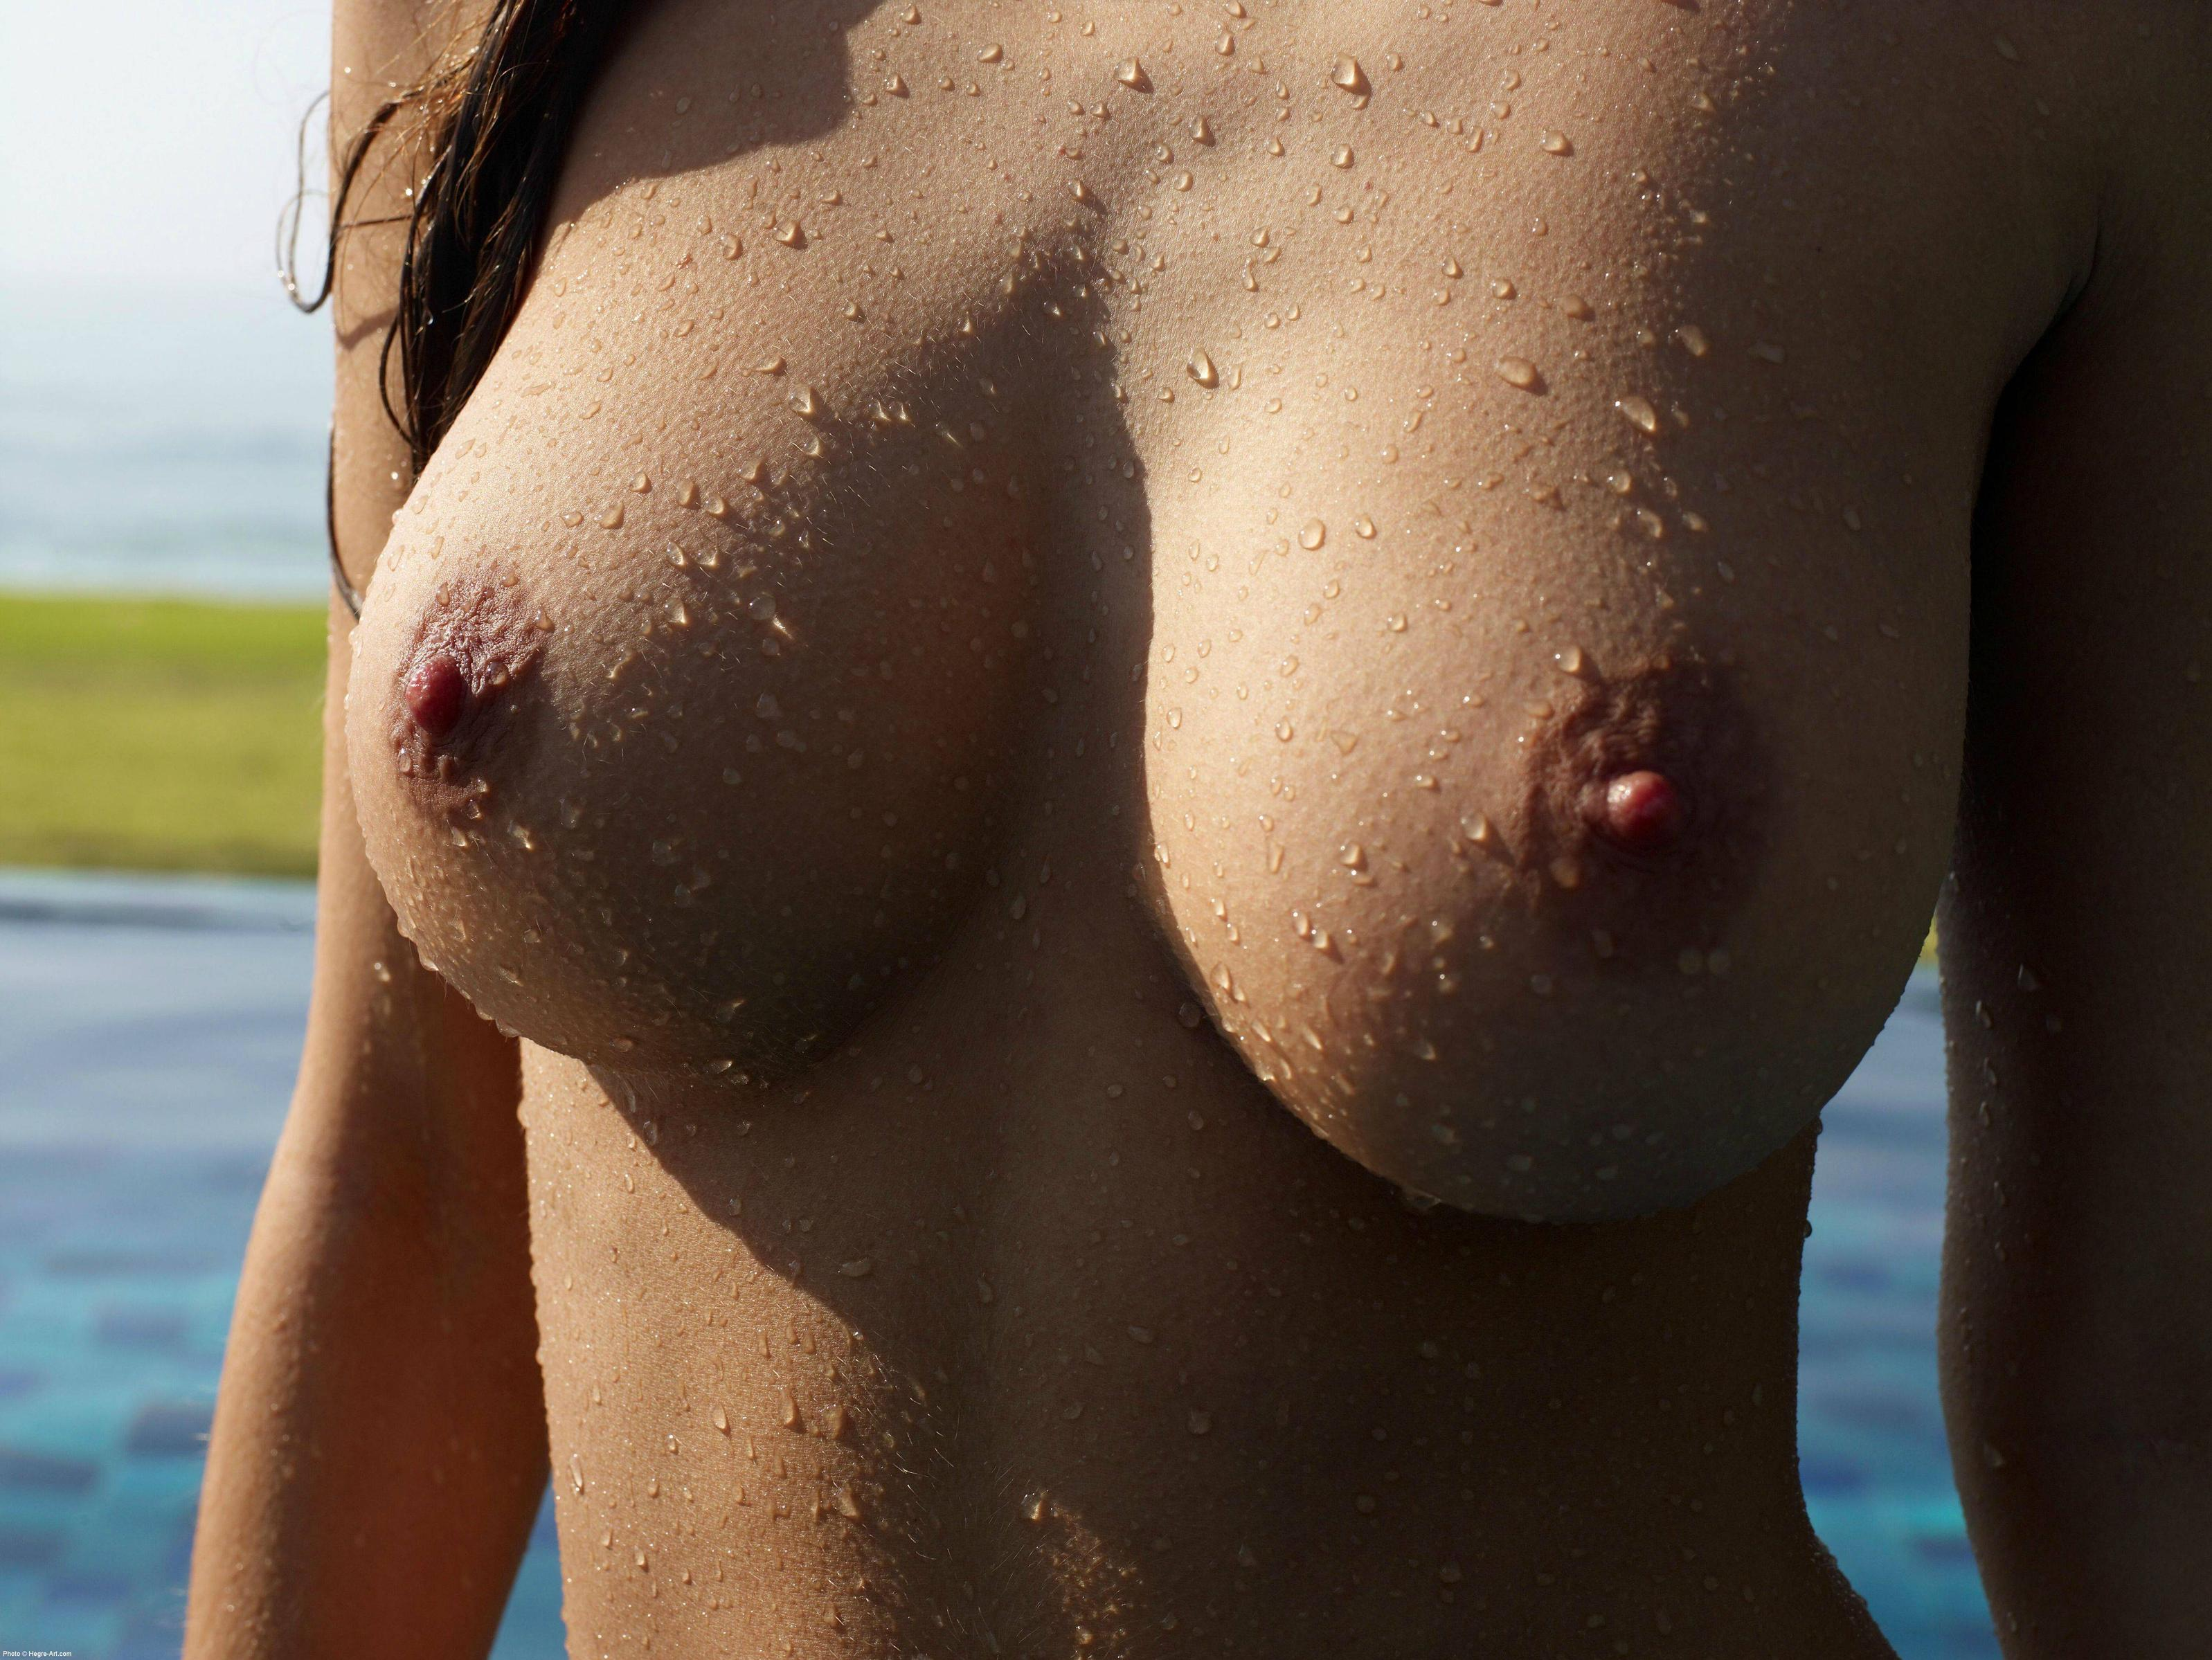 Tumblr shemale topless beach